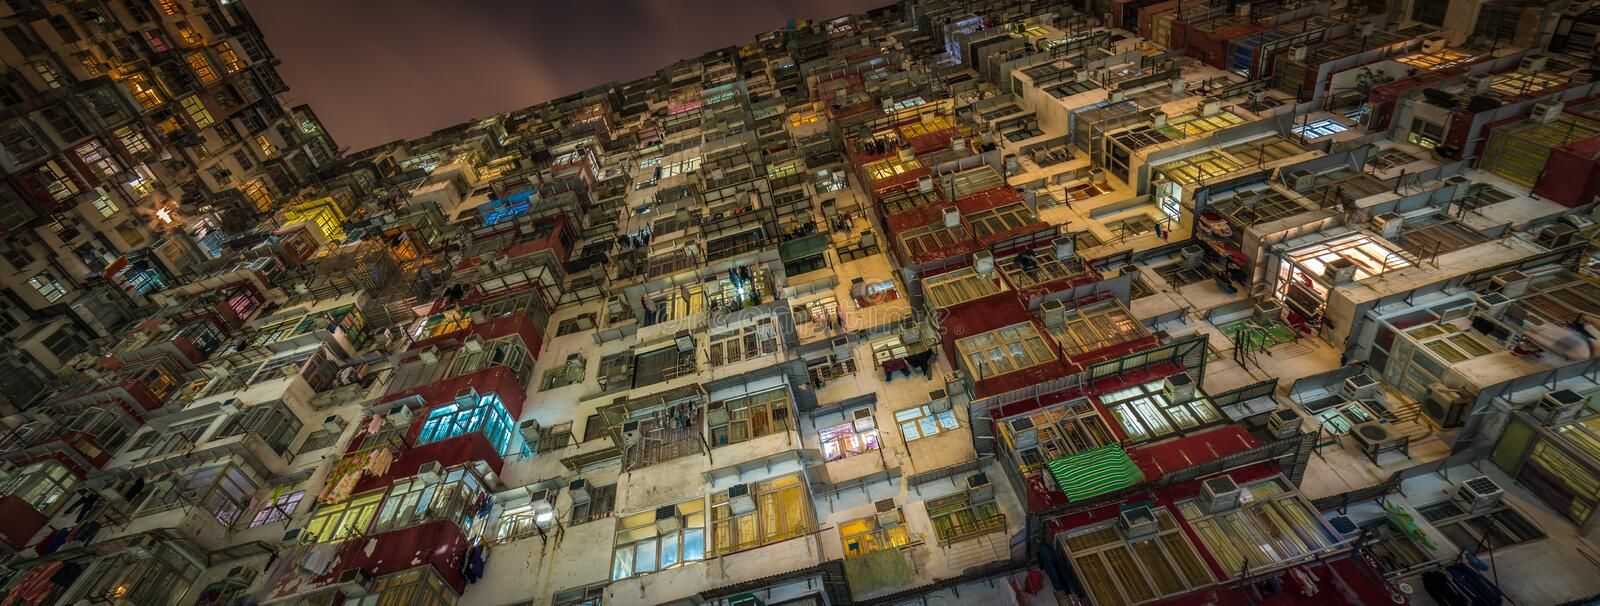 Overcrowded residential building in Hong Kong stock photography